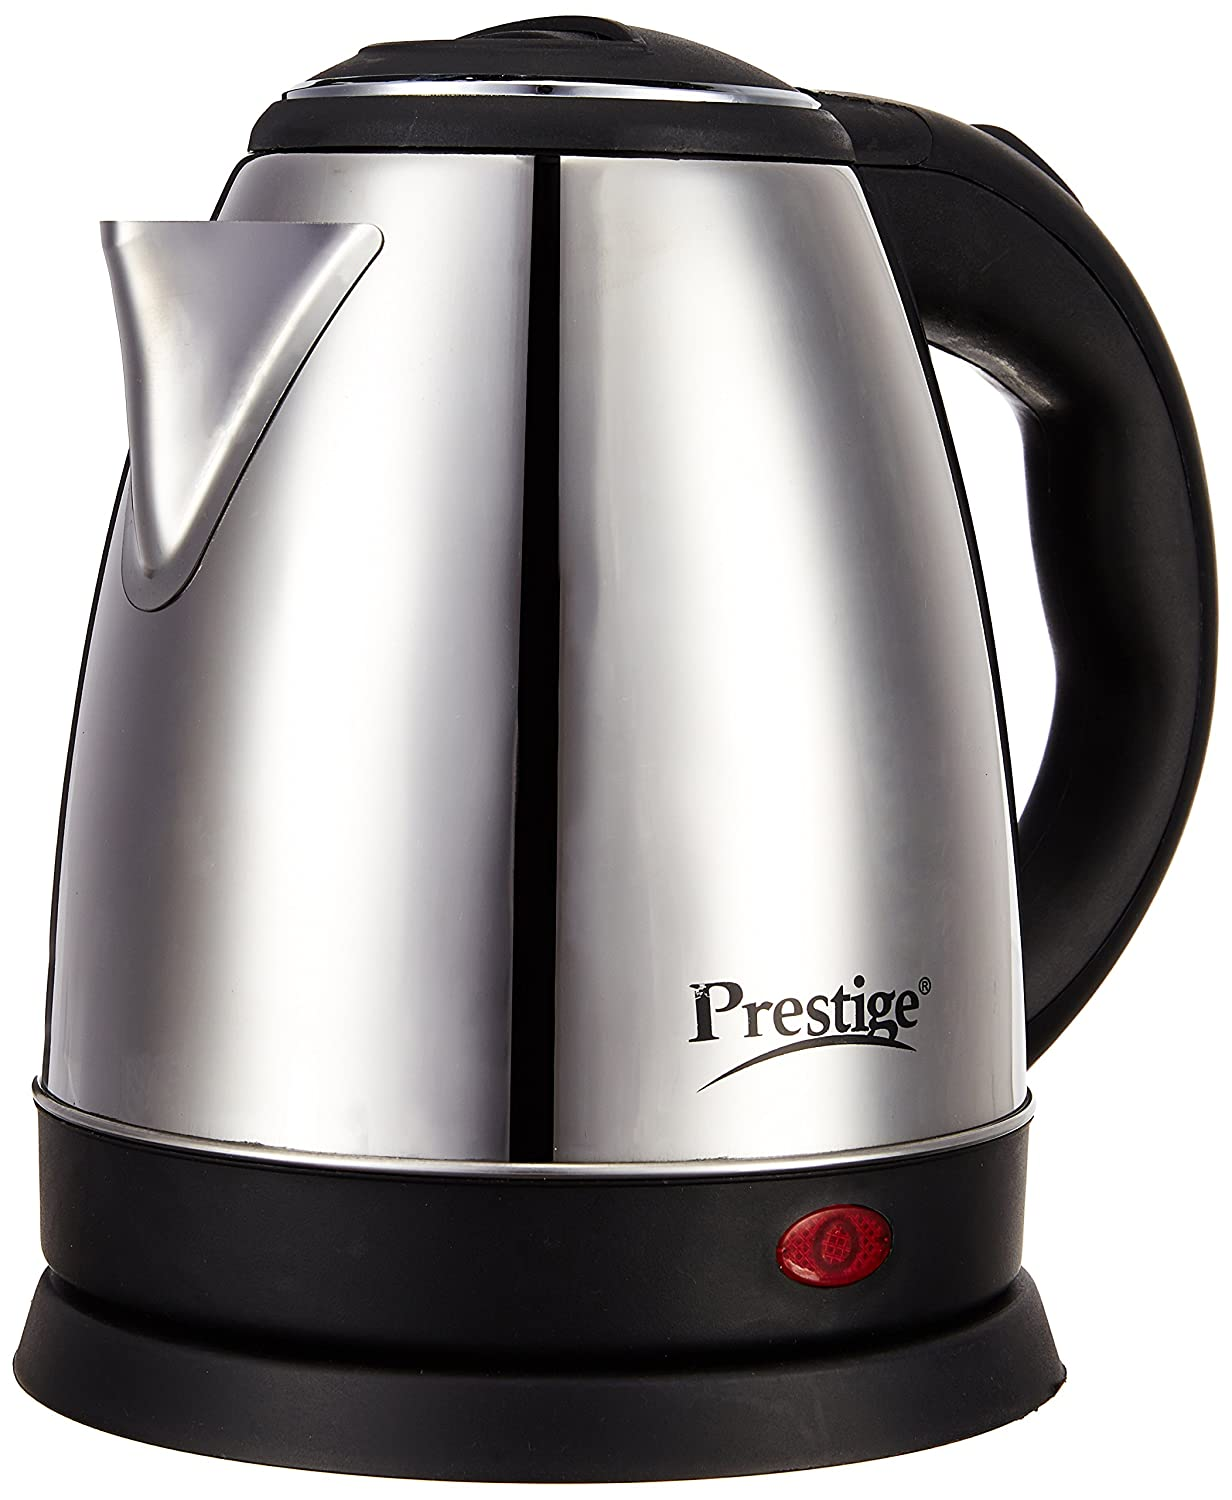 Prestige PKOSS 1.8-Litres 1500-Watt Electric Kettle